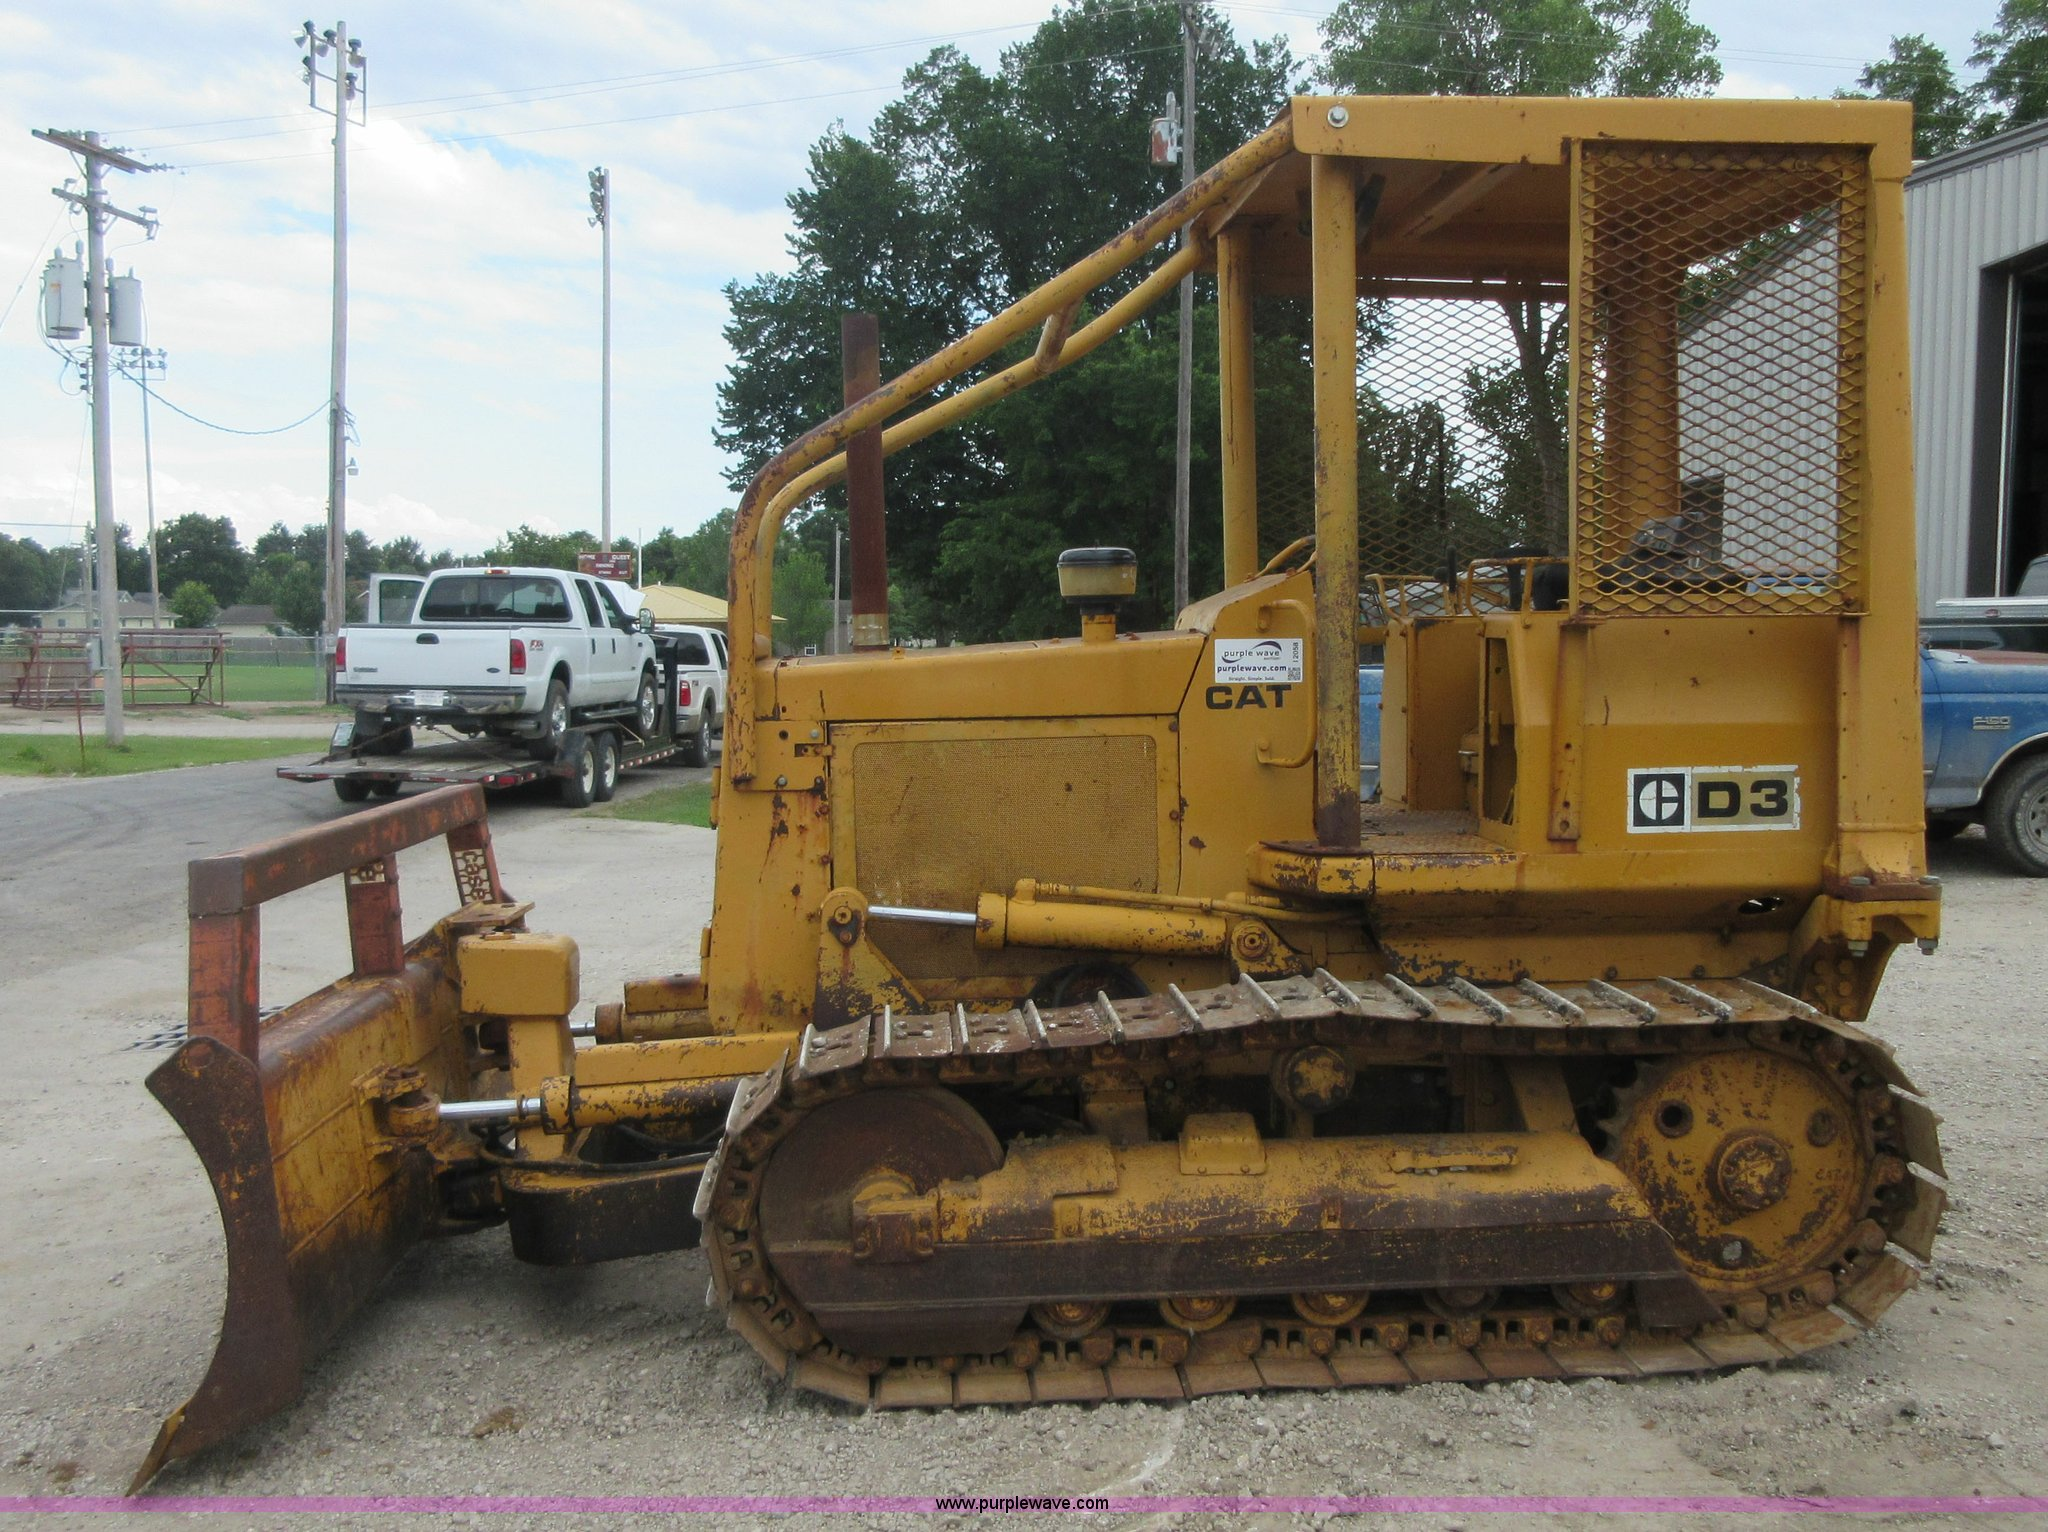 1979 Caterpillar D3 dozer | Item I2058 | SOLD! August 27 Con